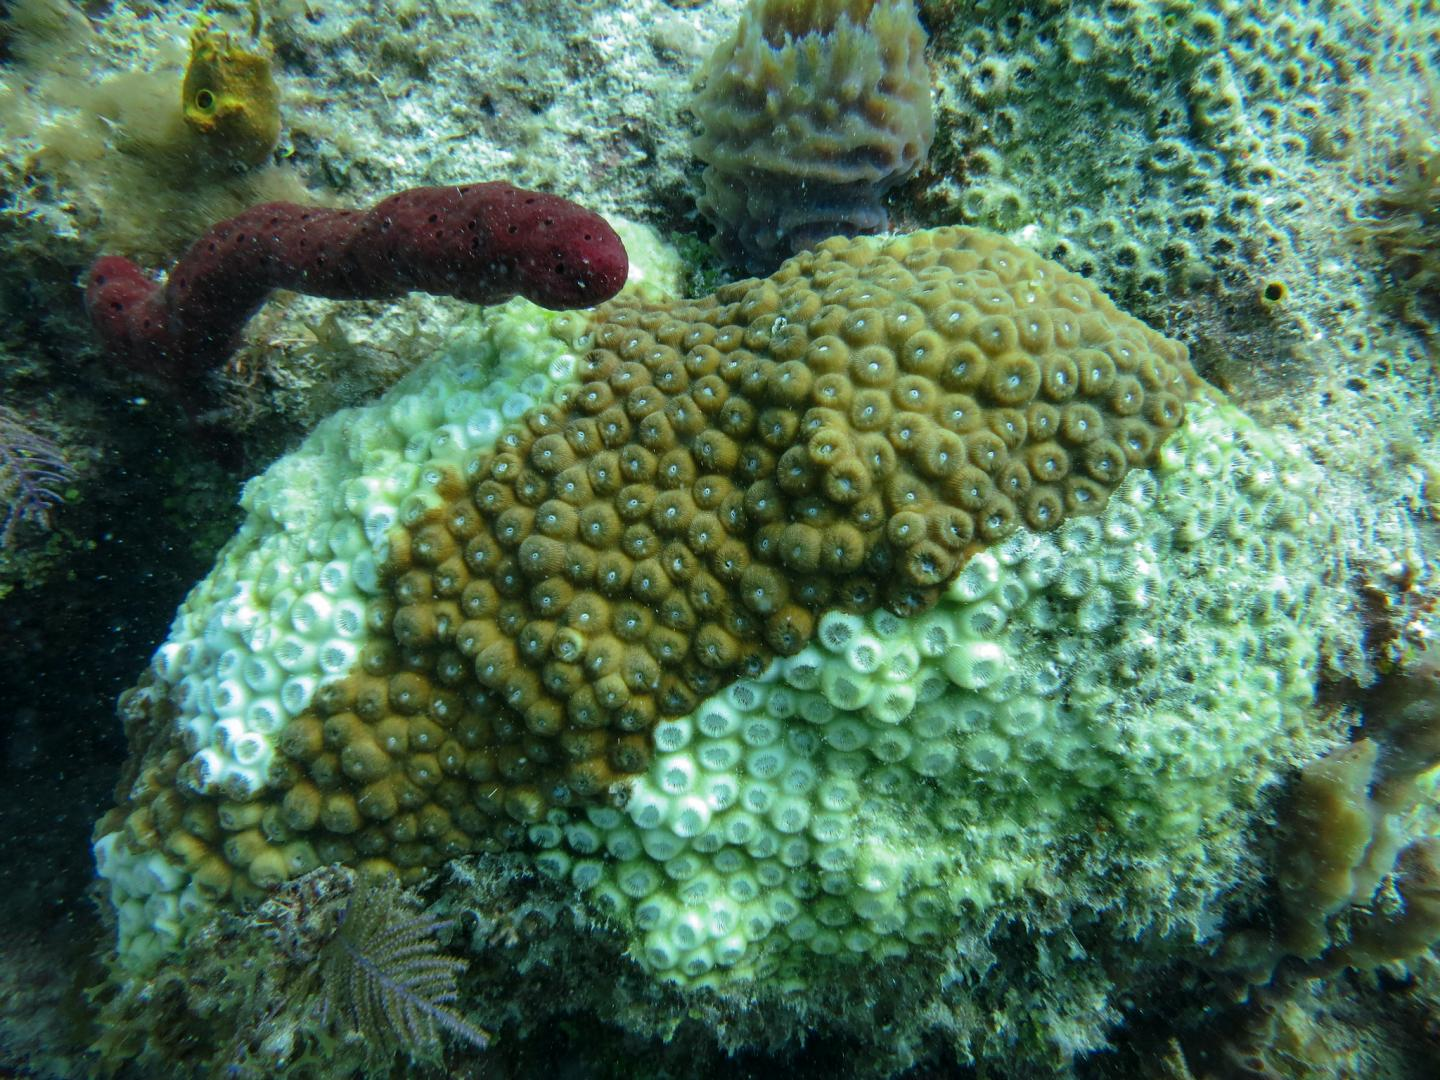 Study Finds Genes Role in Immune Response of Florida Corals to Rapidly Spreading Disease